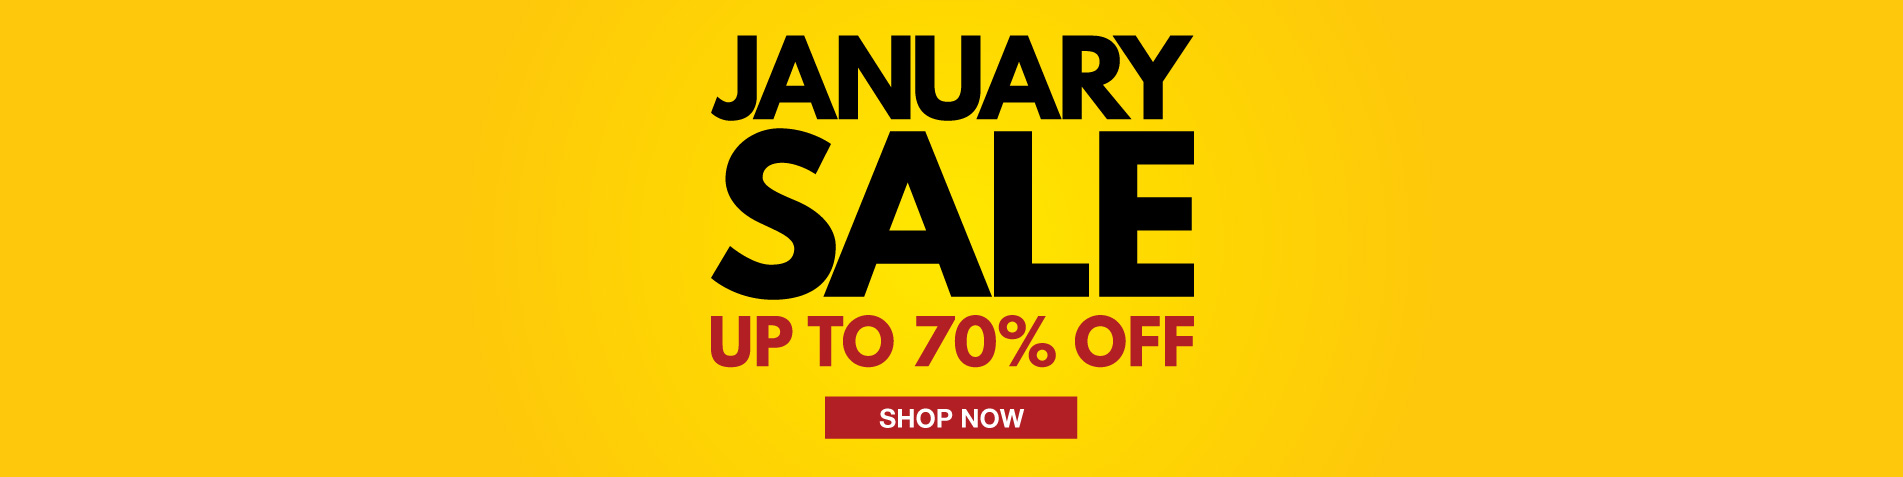 January Sale - up to 70% off